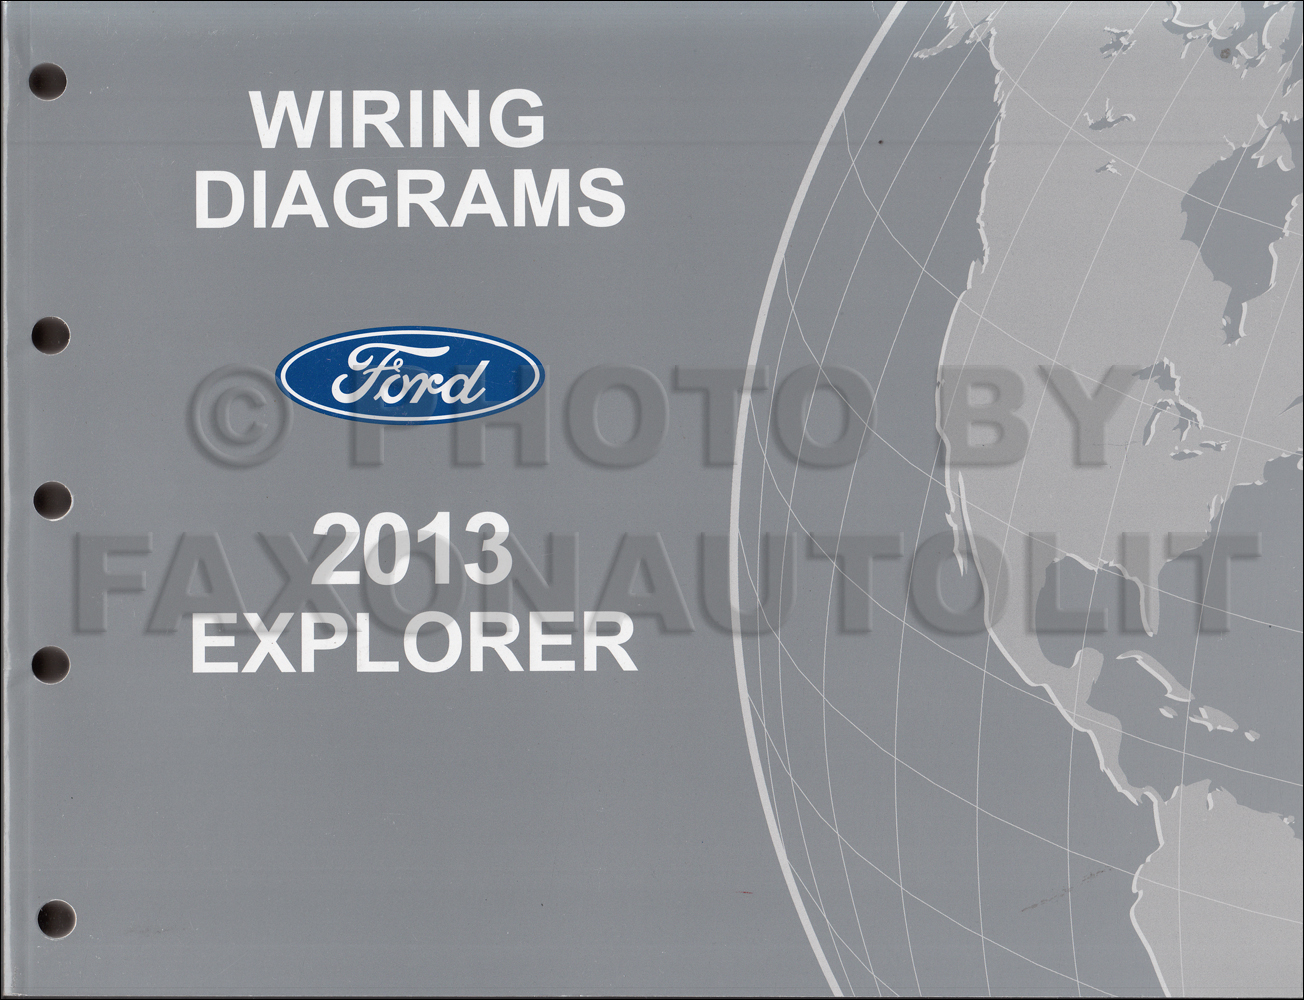 2013 Ford Explorer Wiring Diagram Manual Original 2013 F-150 Wiring Diagram  2013 Ford Explorer Wiring Diagrams